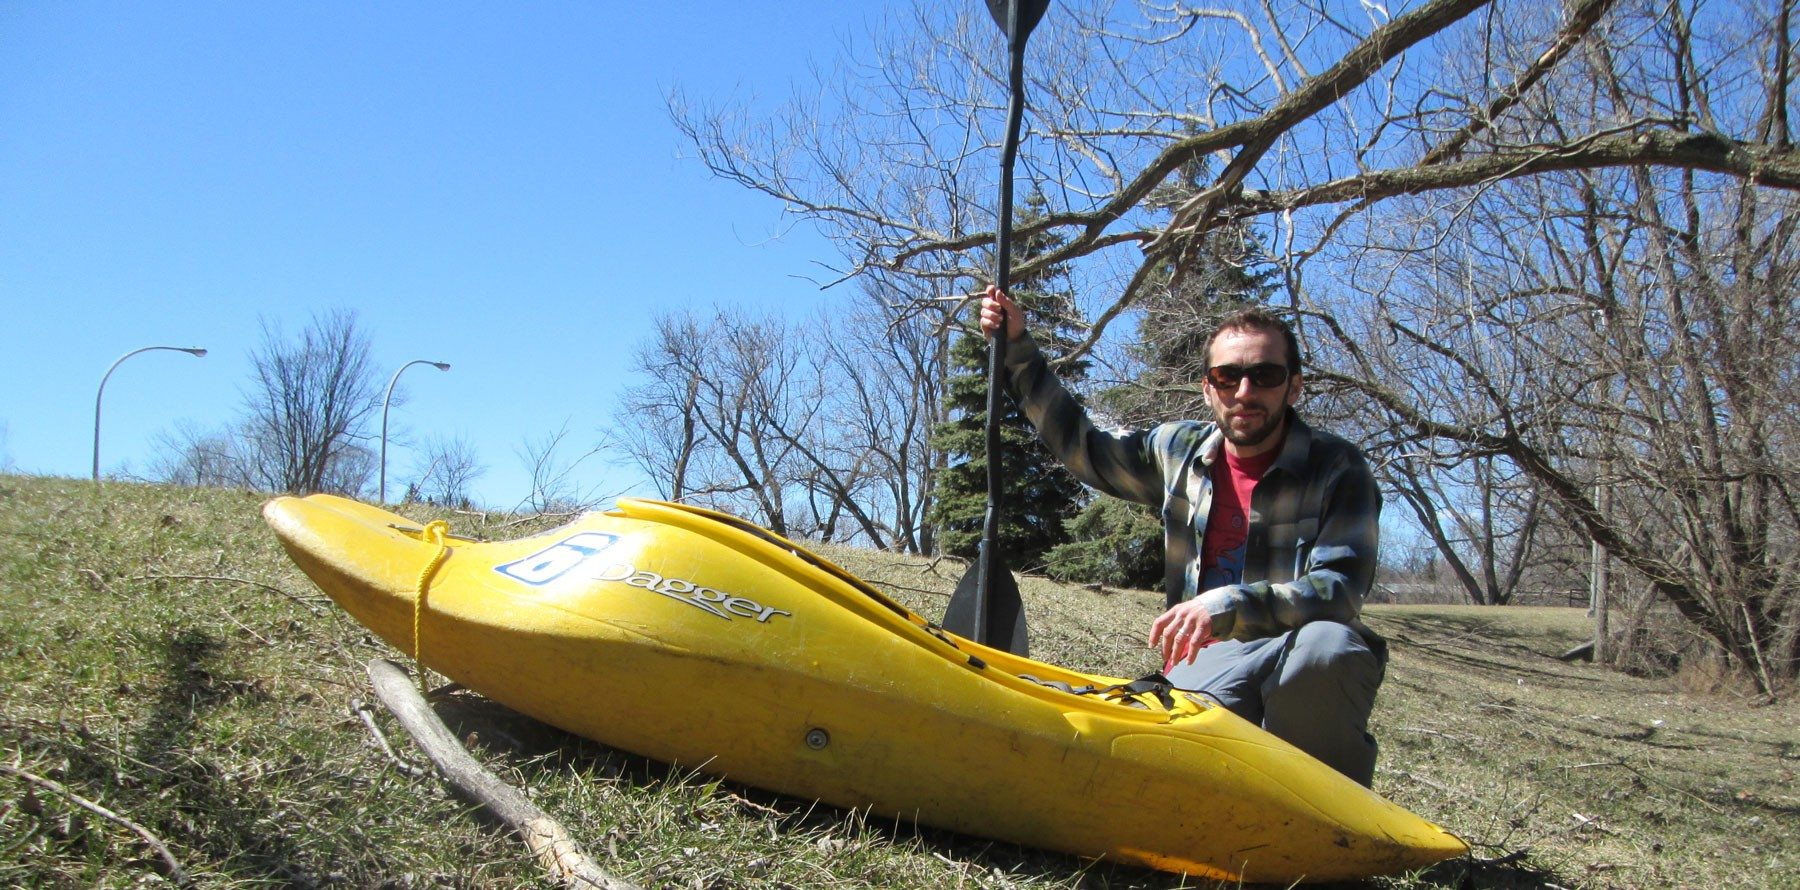 First day of Spring: A kayaker's harrowing, 'half-baked' but oddly meditative trip on Sawmill Creek